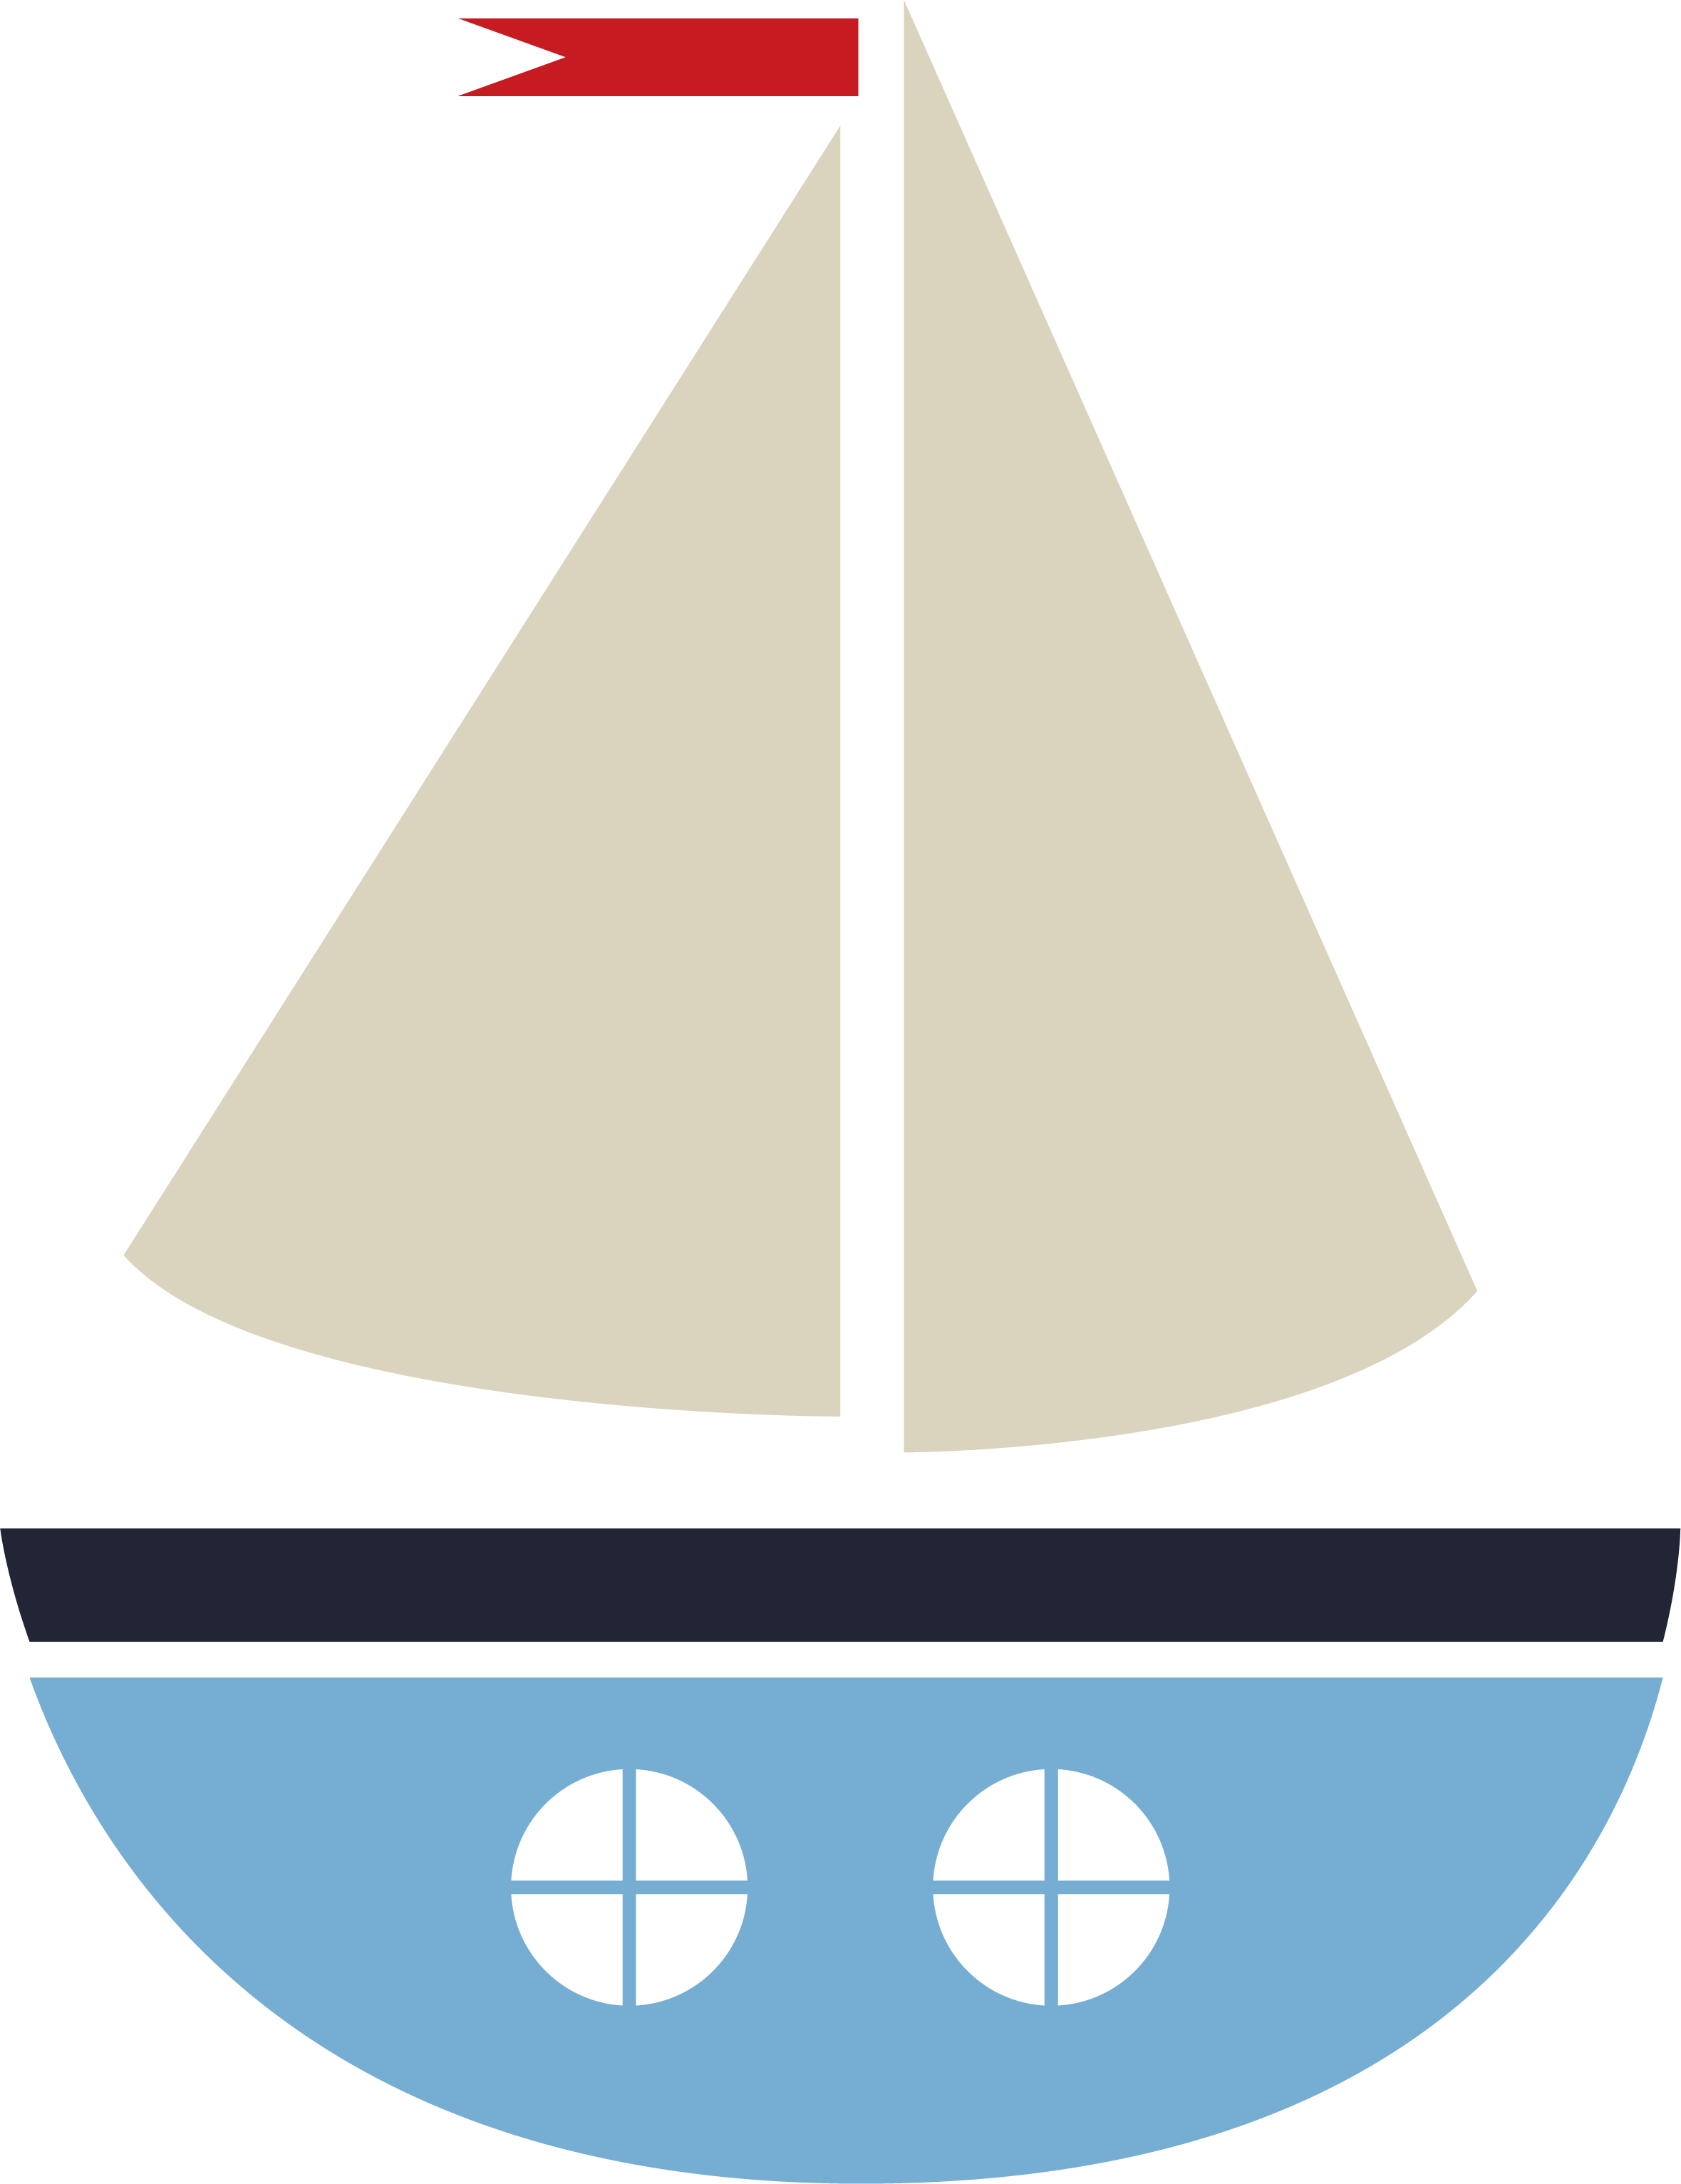 Deep Blue Sea Sailboat #3 SVG Cut File